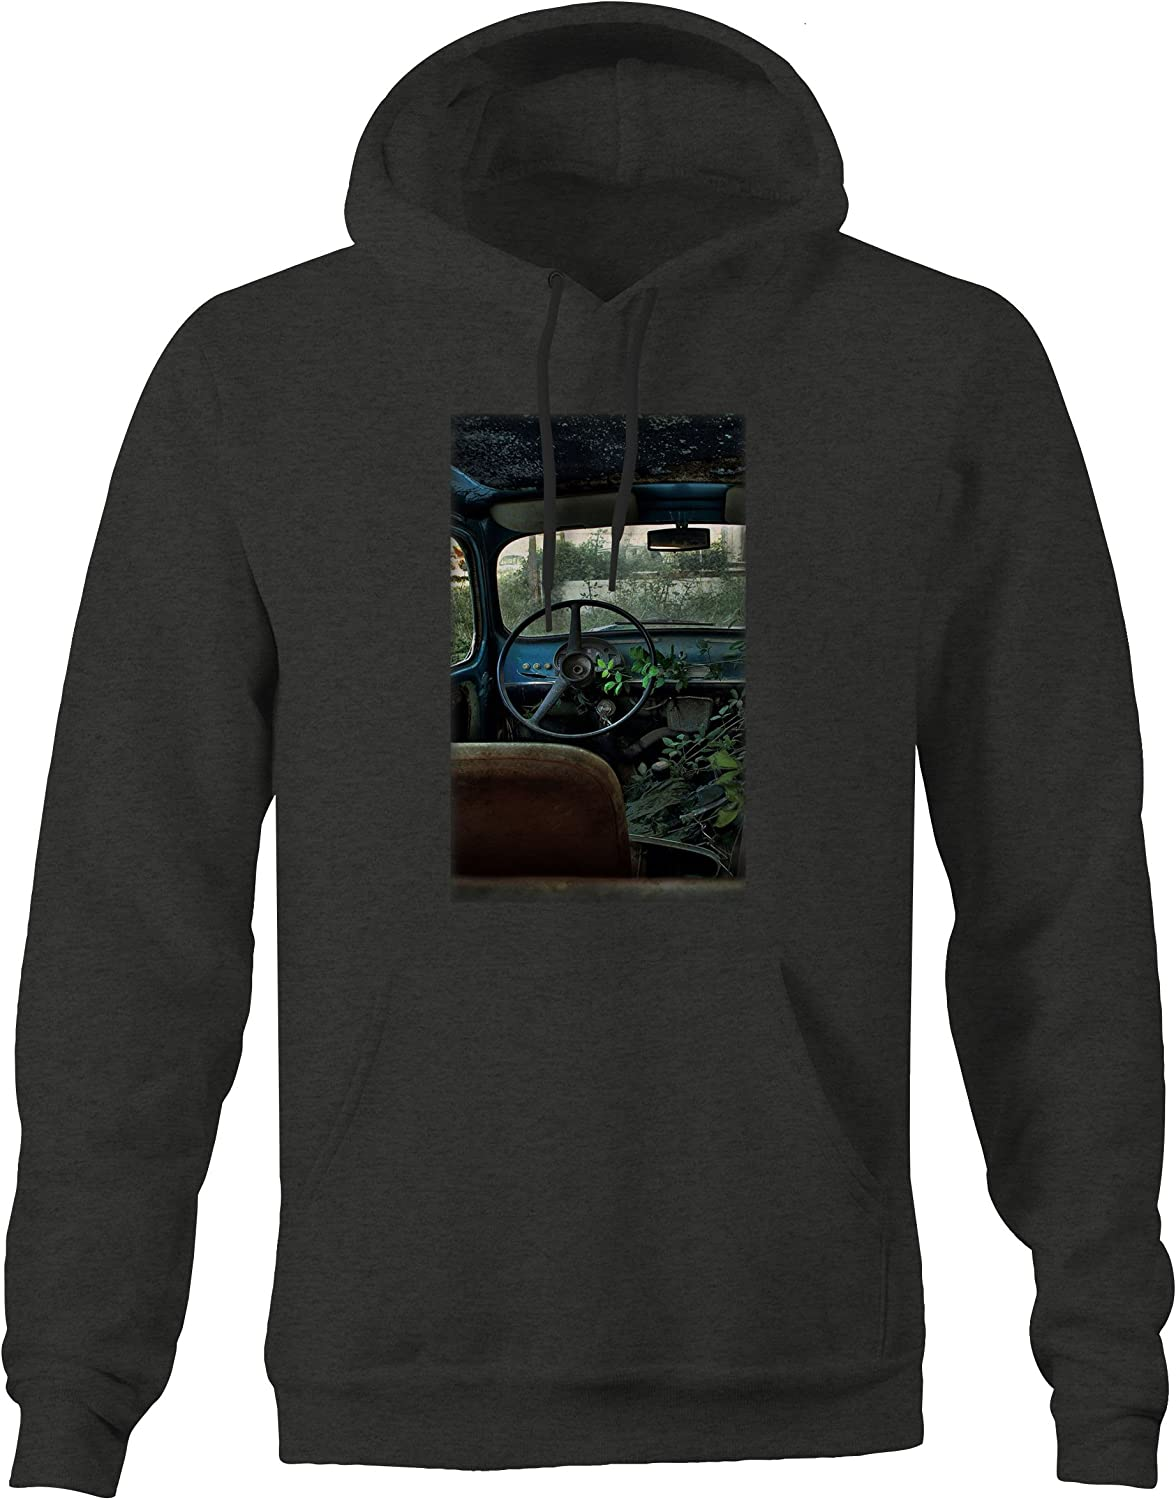 Vintage Pickup Truck Rusted Patina in Field Muscle Car Graphic Hoodie for Men